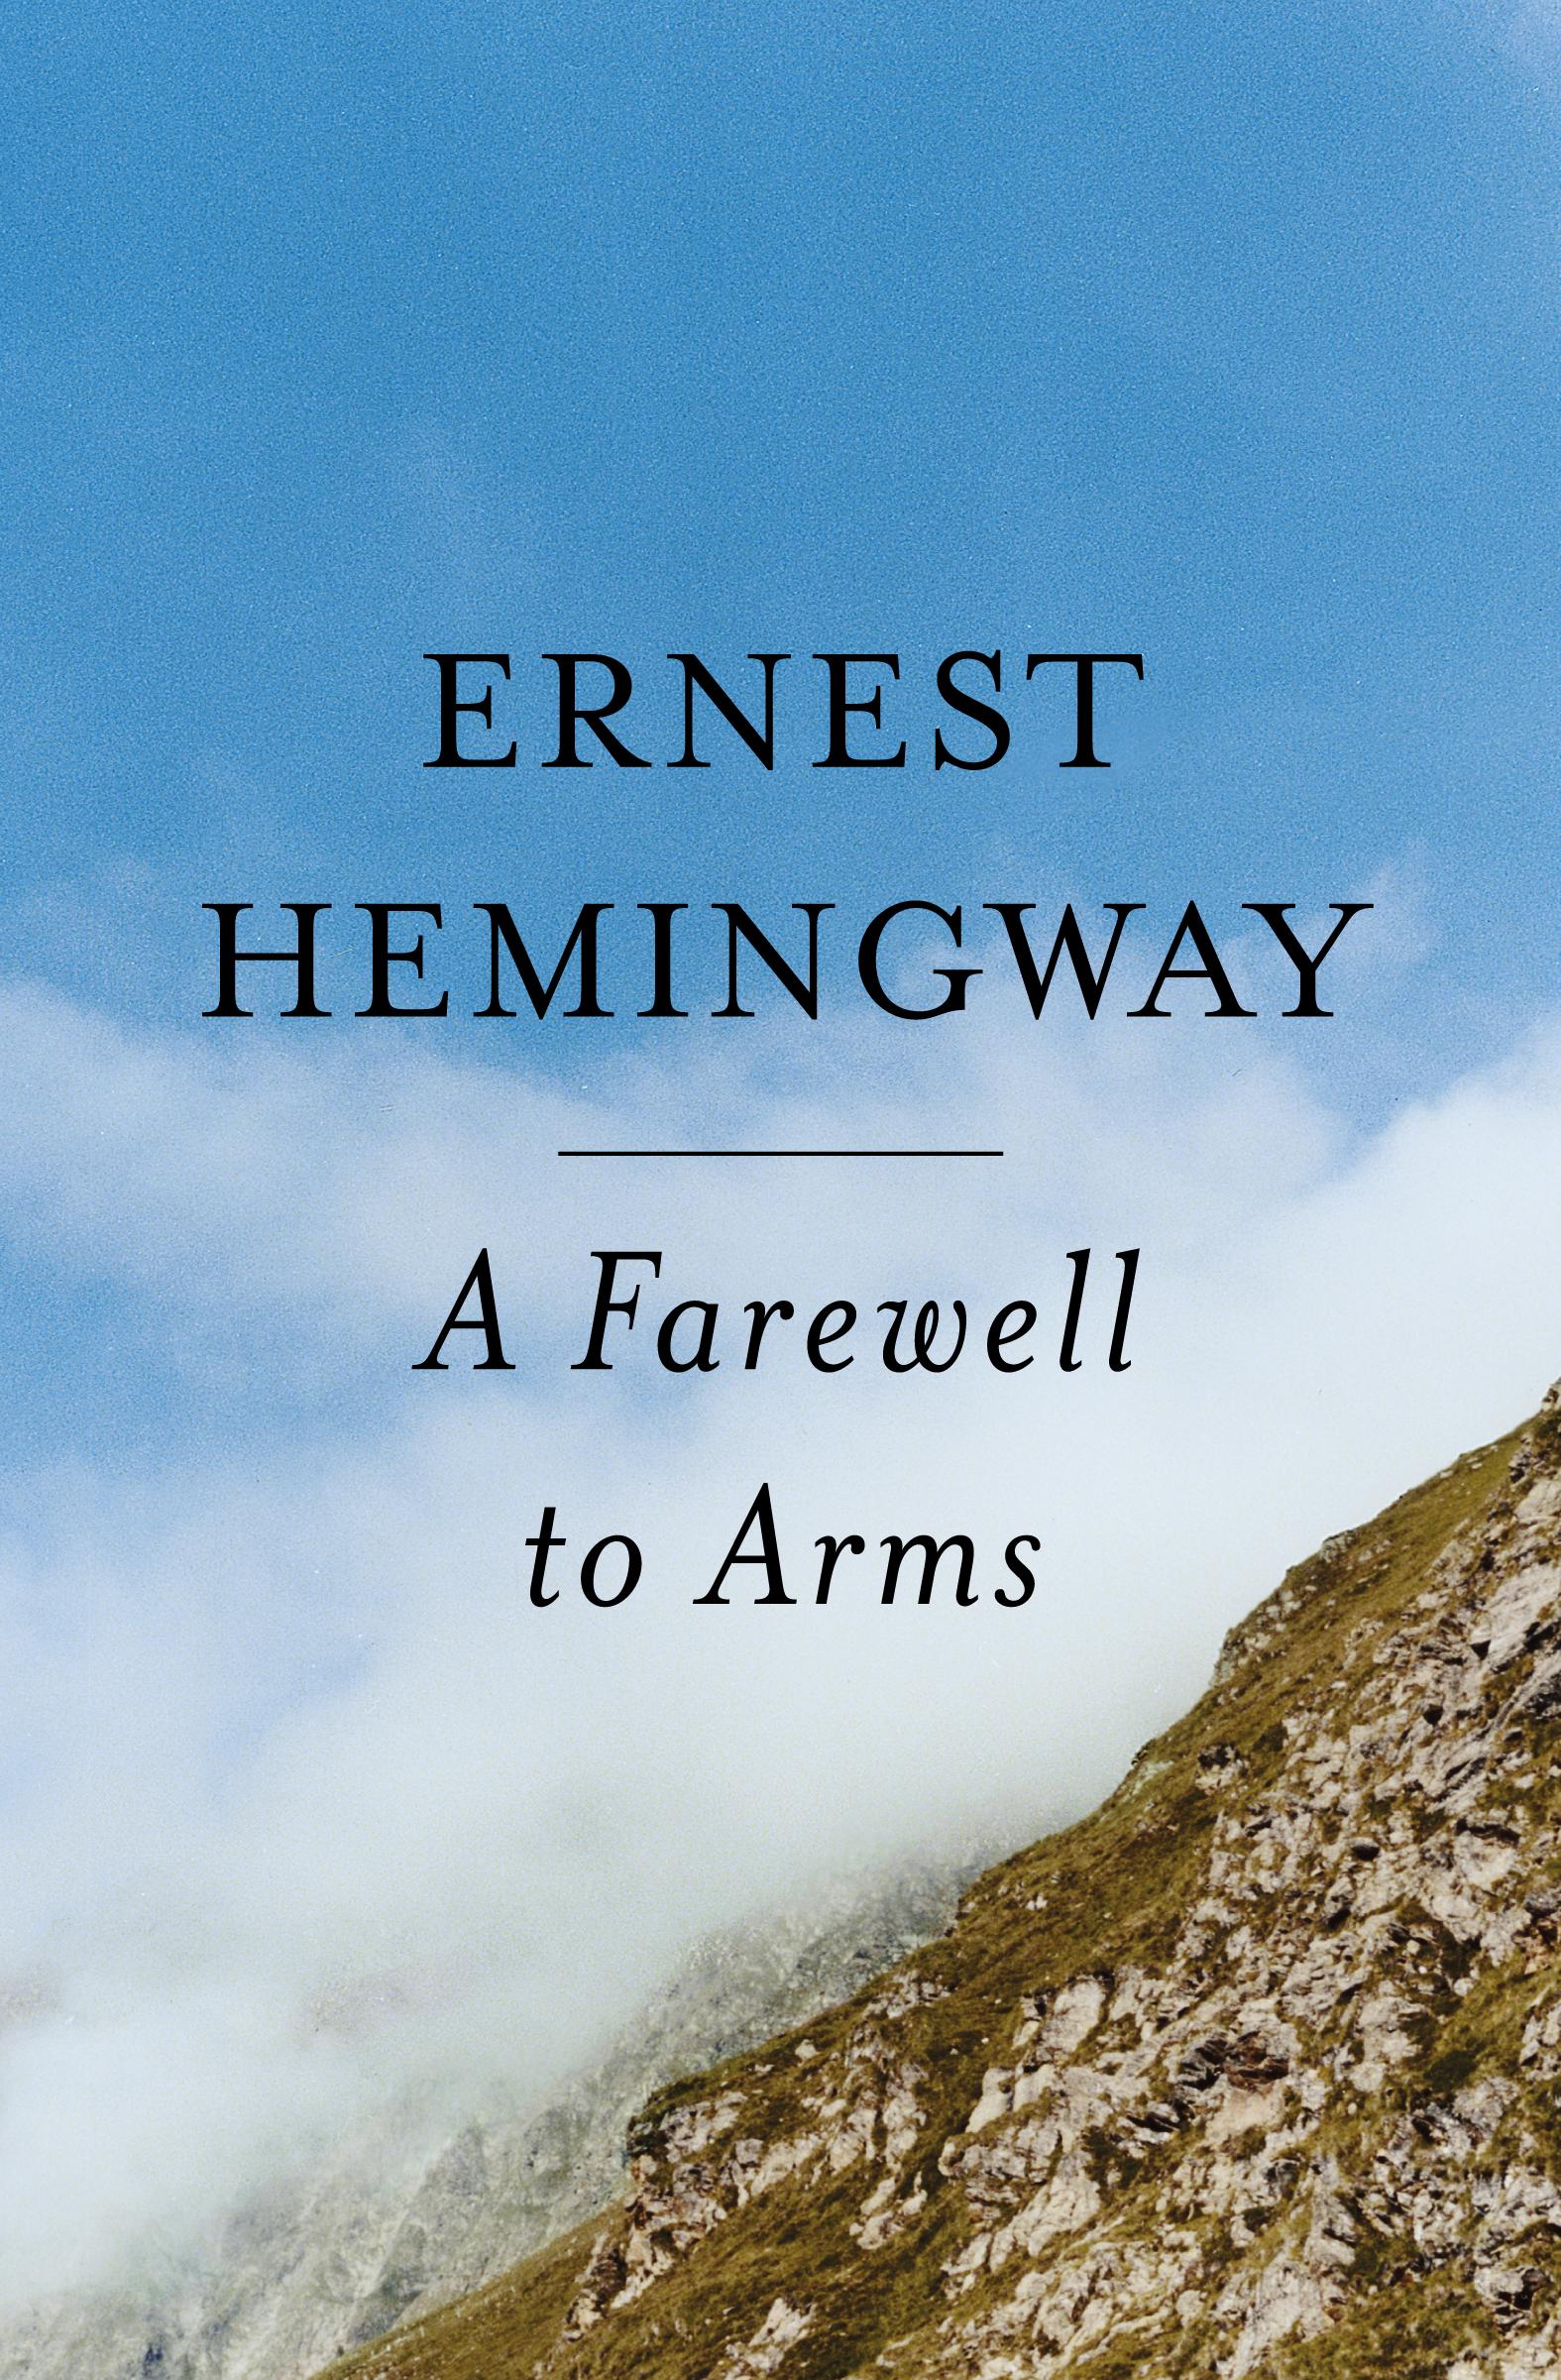 Literary Devices in A Farewell to Arms